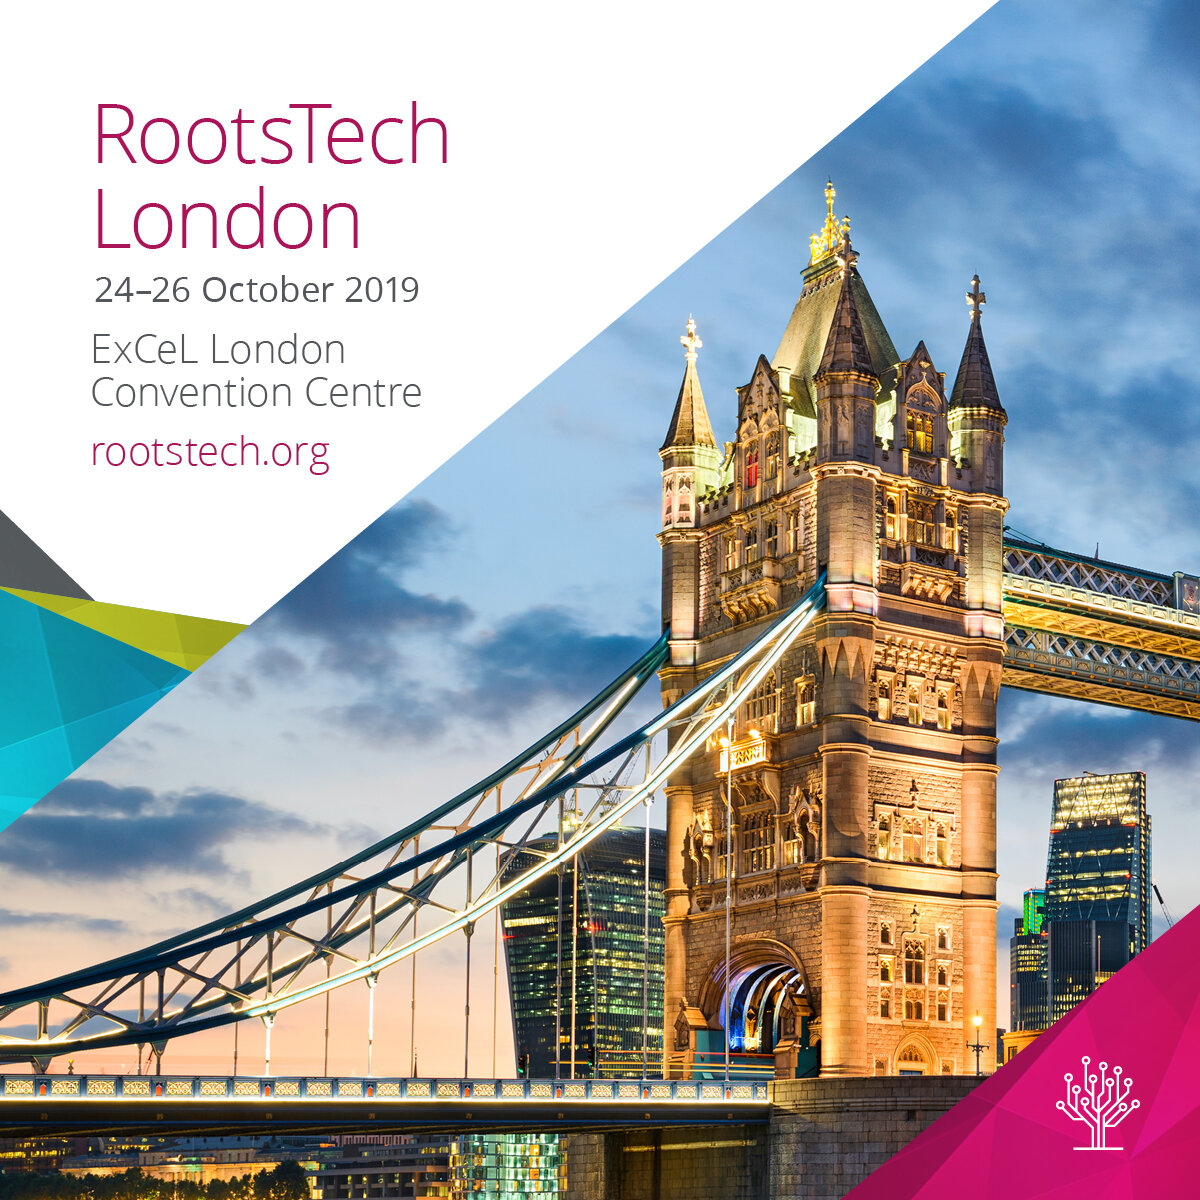 RootsTech, the world's biggest family history conference is coming to London next month! We've been invited to speak at RootsTech London and we thought we couldn't be more excited. But now we are even more excited, because RootsTech gave us a special speaker's discount code to share with you so you can join us!